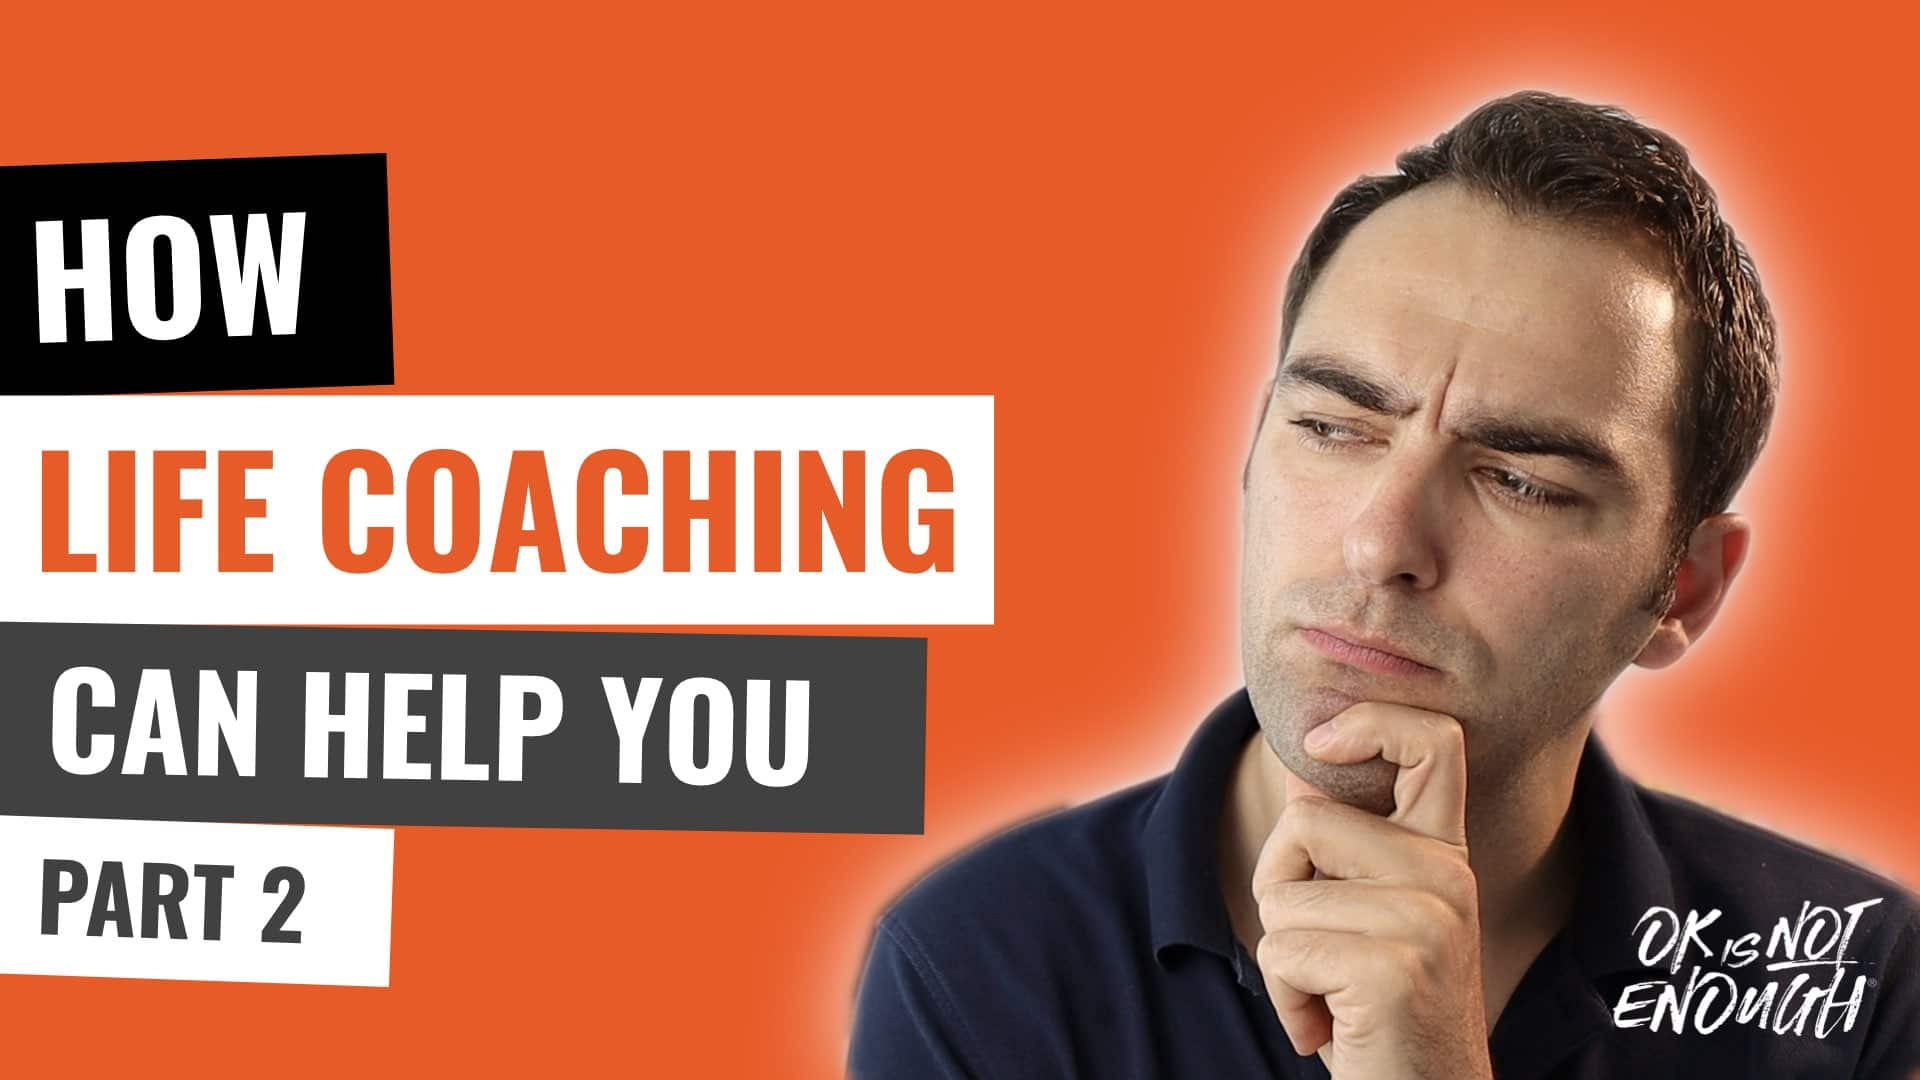 How Life Coaching Can Help You: 10+ Powerful Benefits of Working With a Life Coach (part 2)